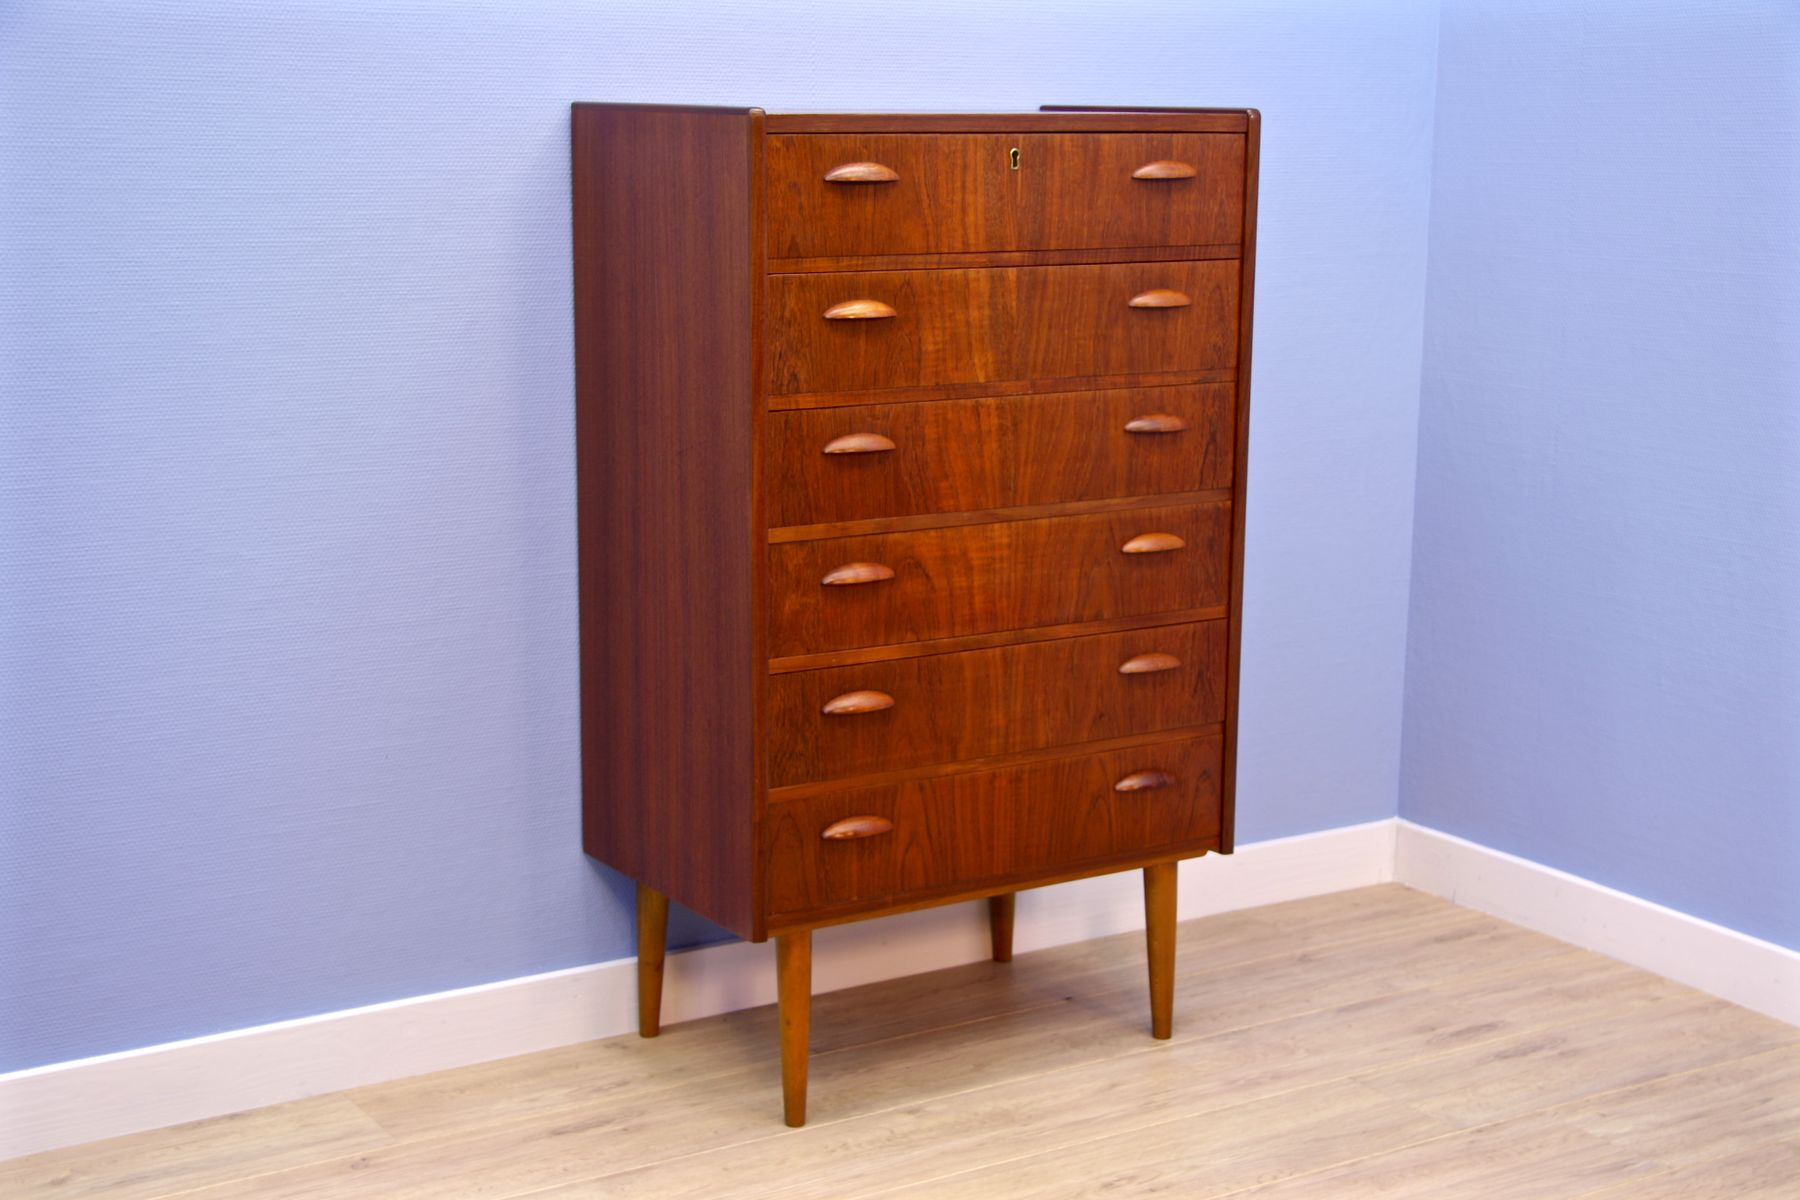 d nische mid century teak furnier kommode 1960er bei pamono kaufen. Black Bedroom Furniture Sets. Home Design Ideas